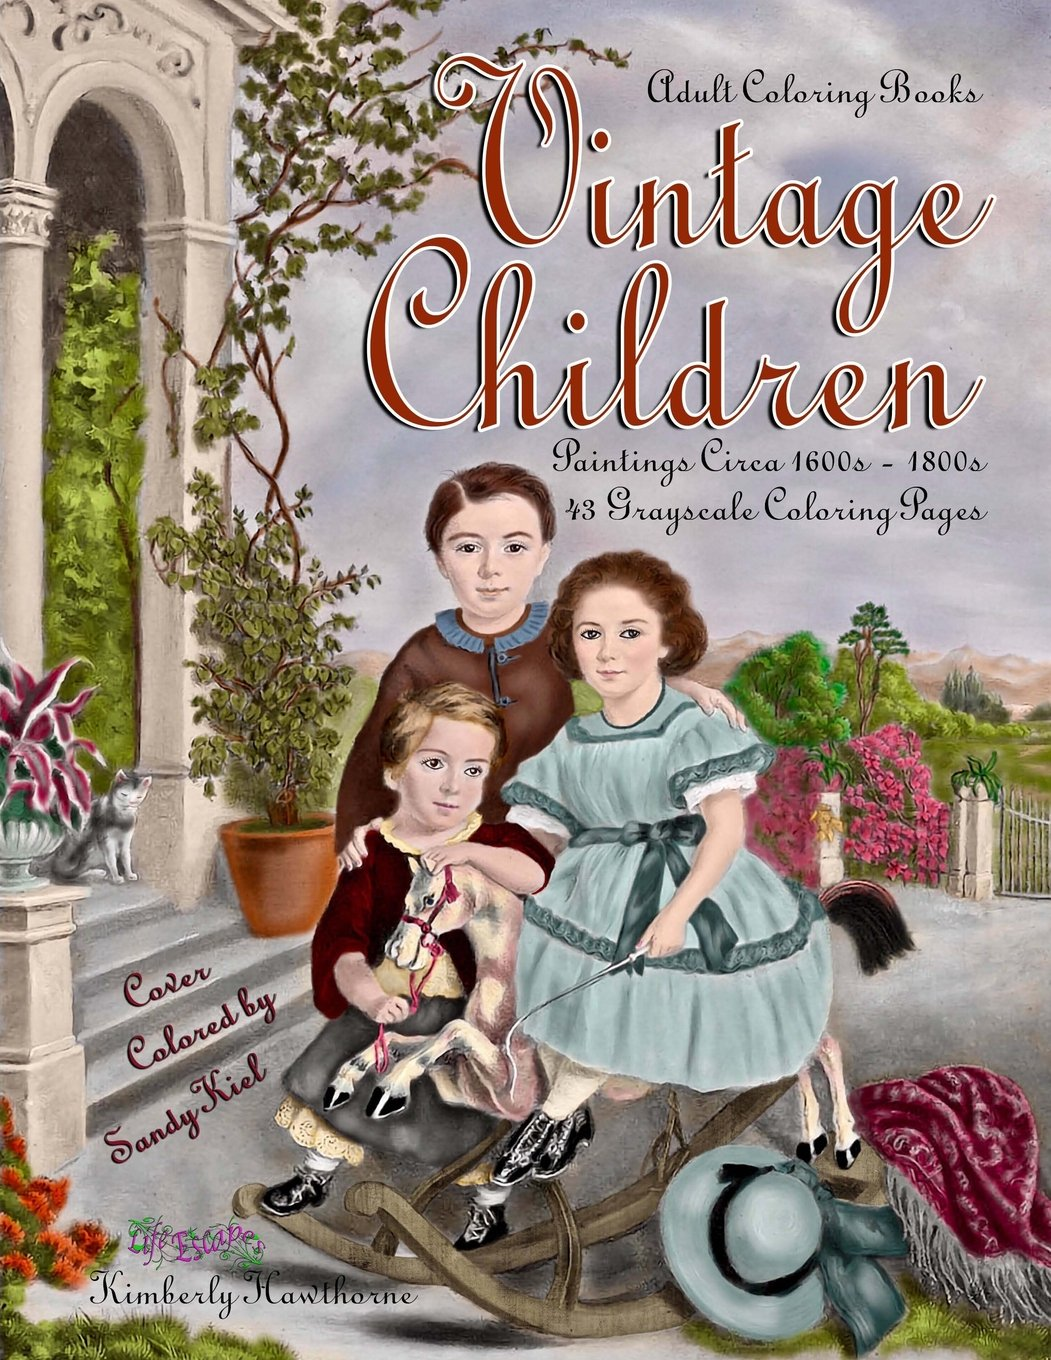 adult coloring books vintage children 43 grayscale coloring pages vintage paintings of children in vintage clothing and hair styles of the day circa 1600s 1800s